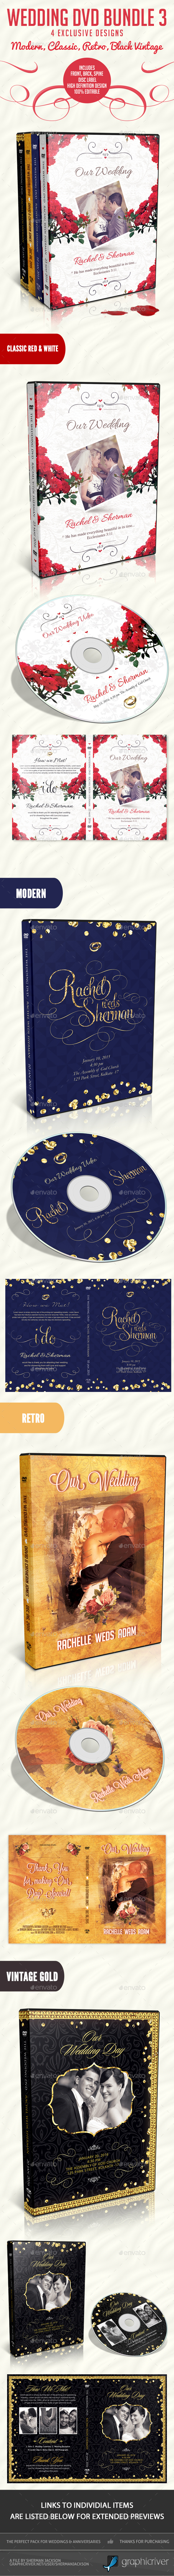 Wedding DVD Bundle 3 - CD & DVD Artwork Print Templates